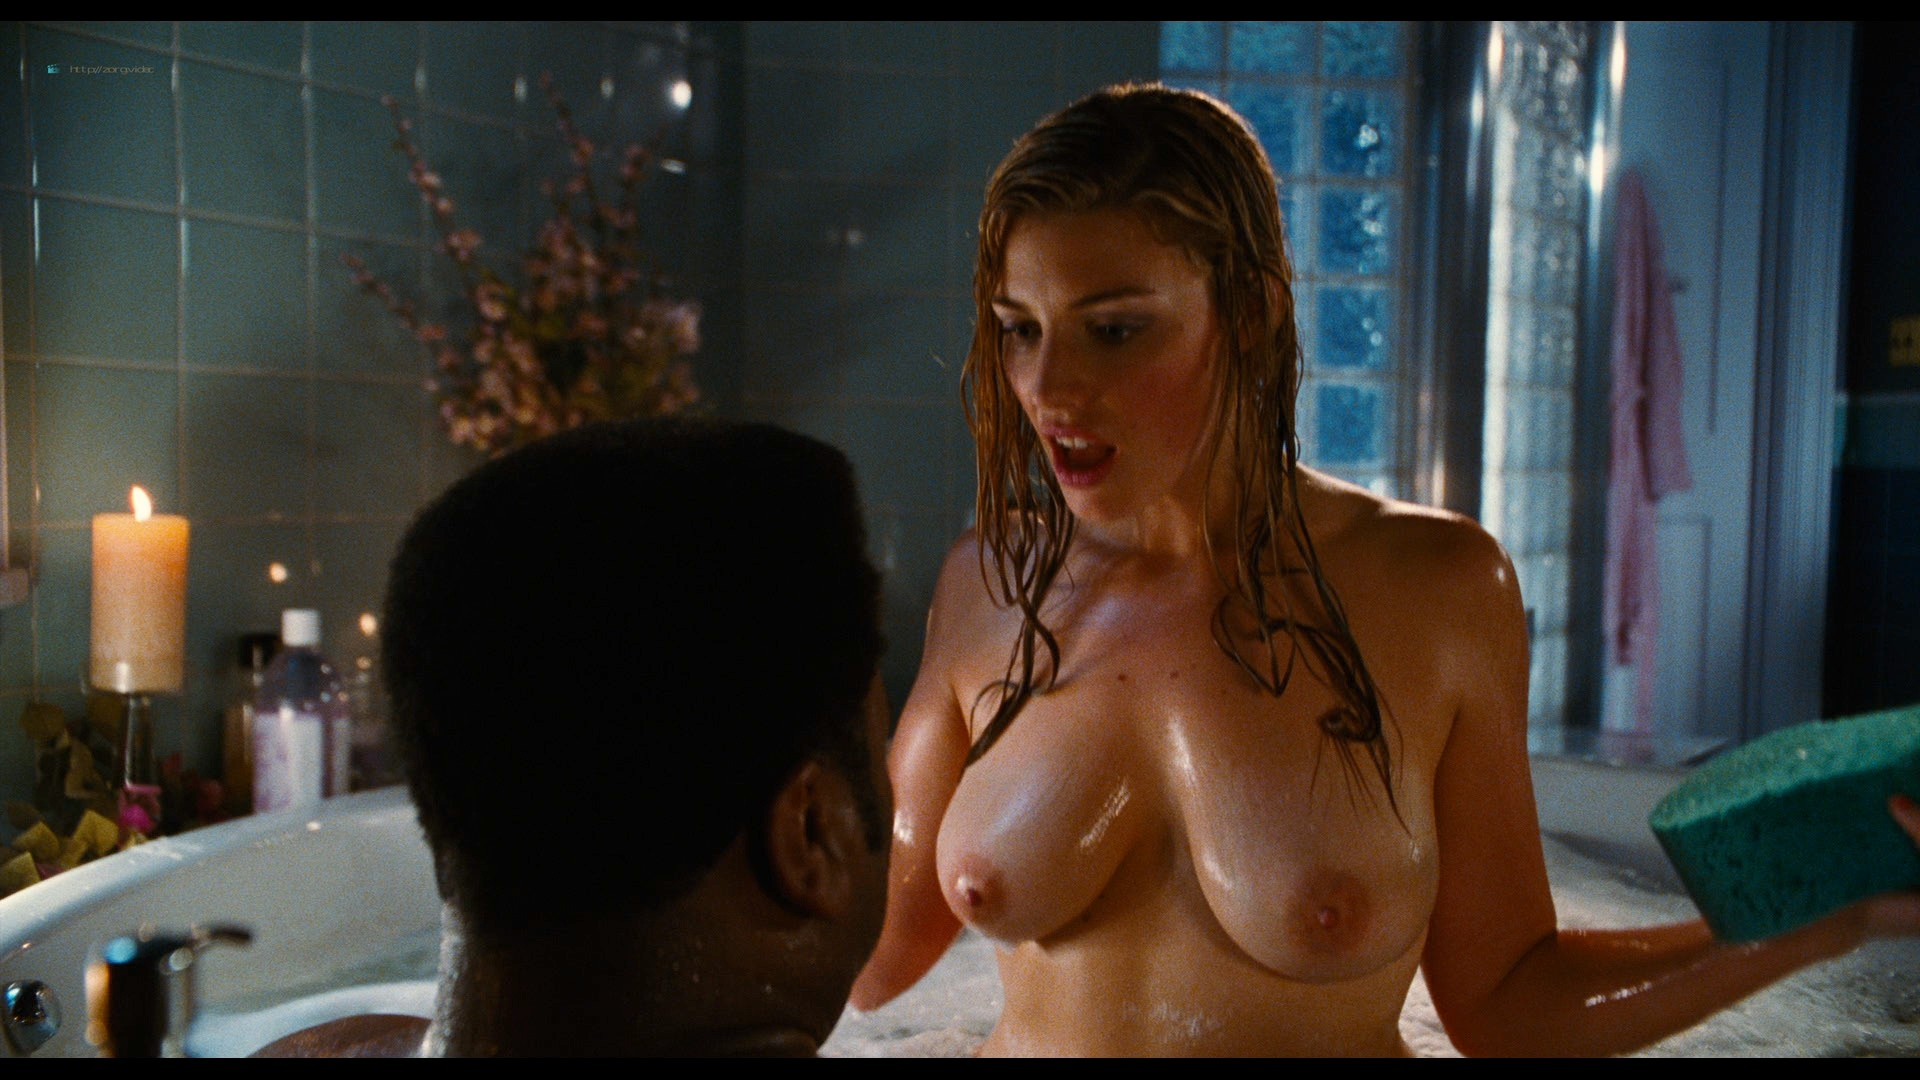 Jessica Pare nude Crystal Lowe topless Lyndsy Fonseca hot and sexy - Hot Tub Time Machine (2010) HD 1080p BluRay REMUX (13)